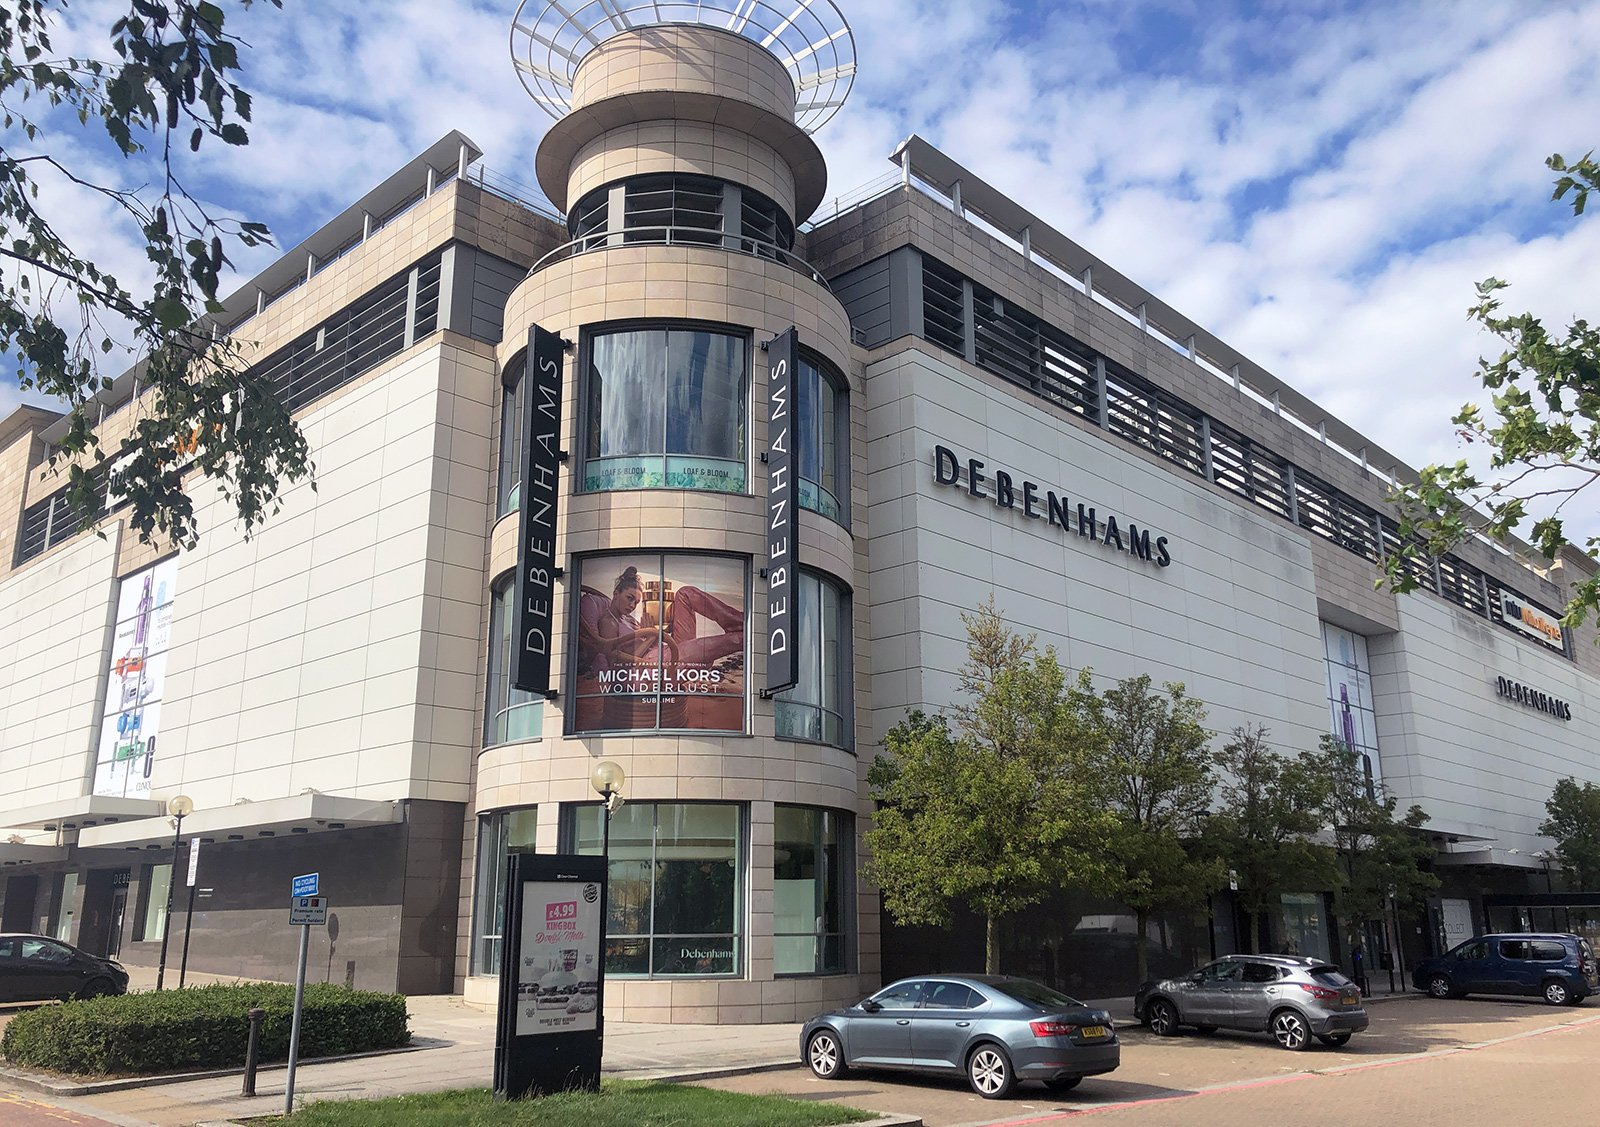 Debenhams in Milton Keynes